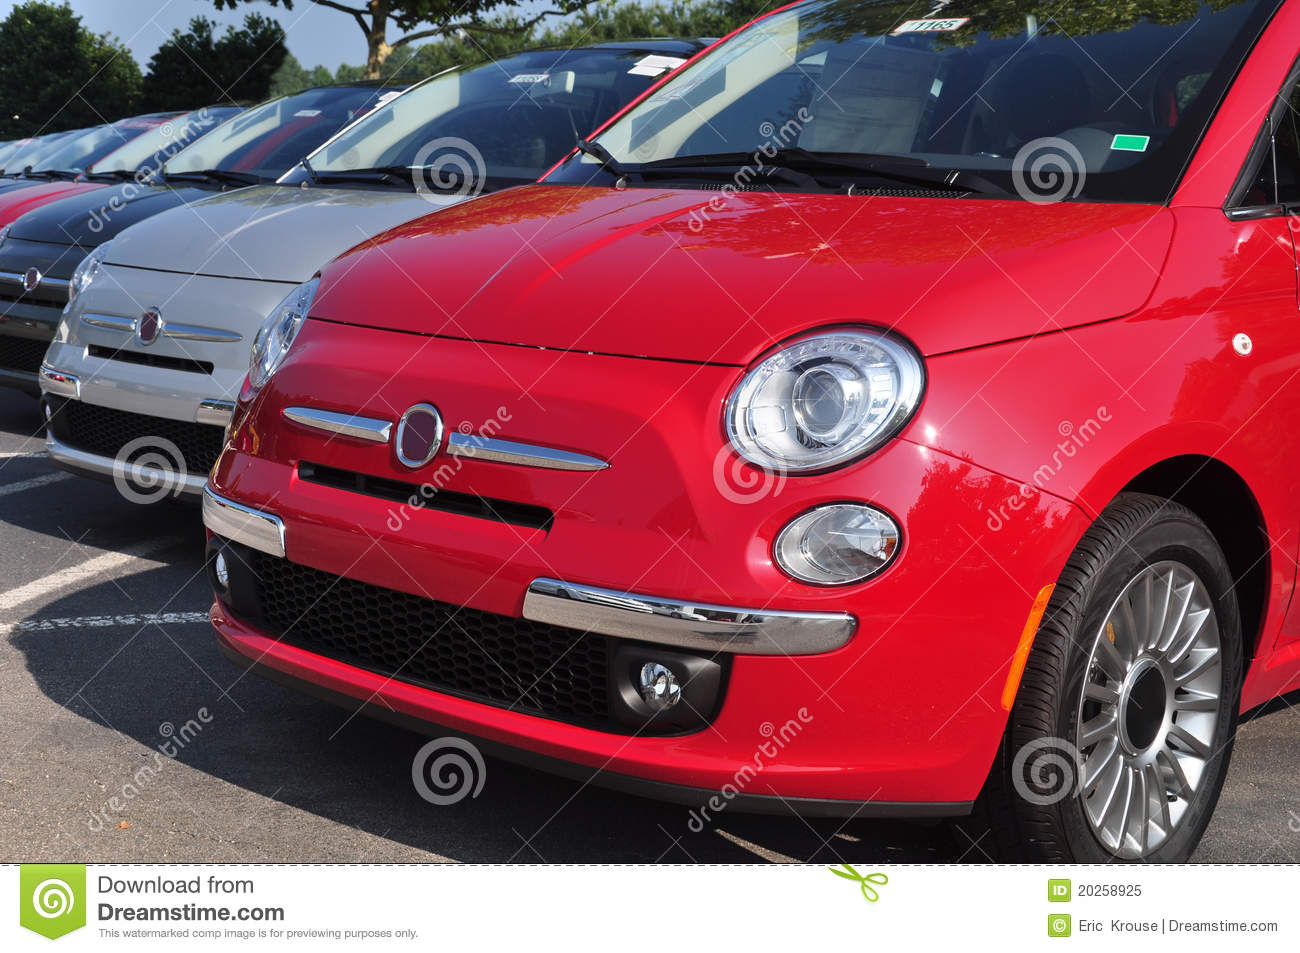 Expensive Car For Sale Or Gift Royalty Free Stock Image: Row Of Cars In Dealership Royalty Free Stock Photo